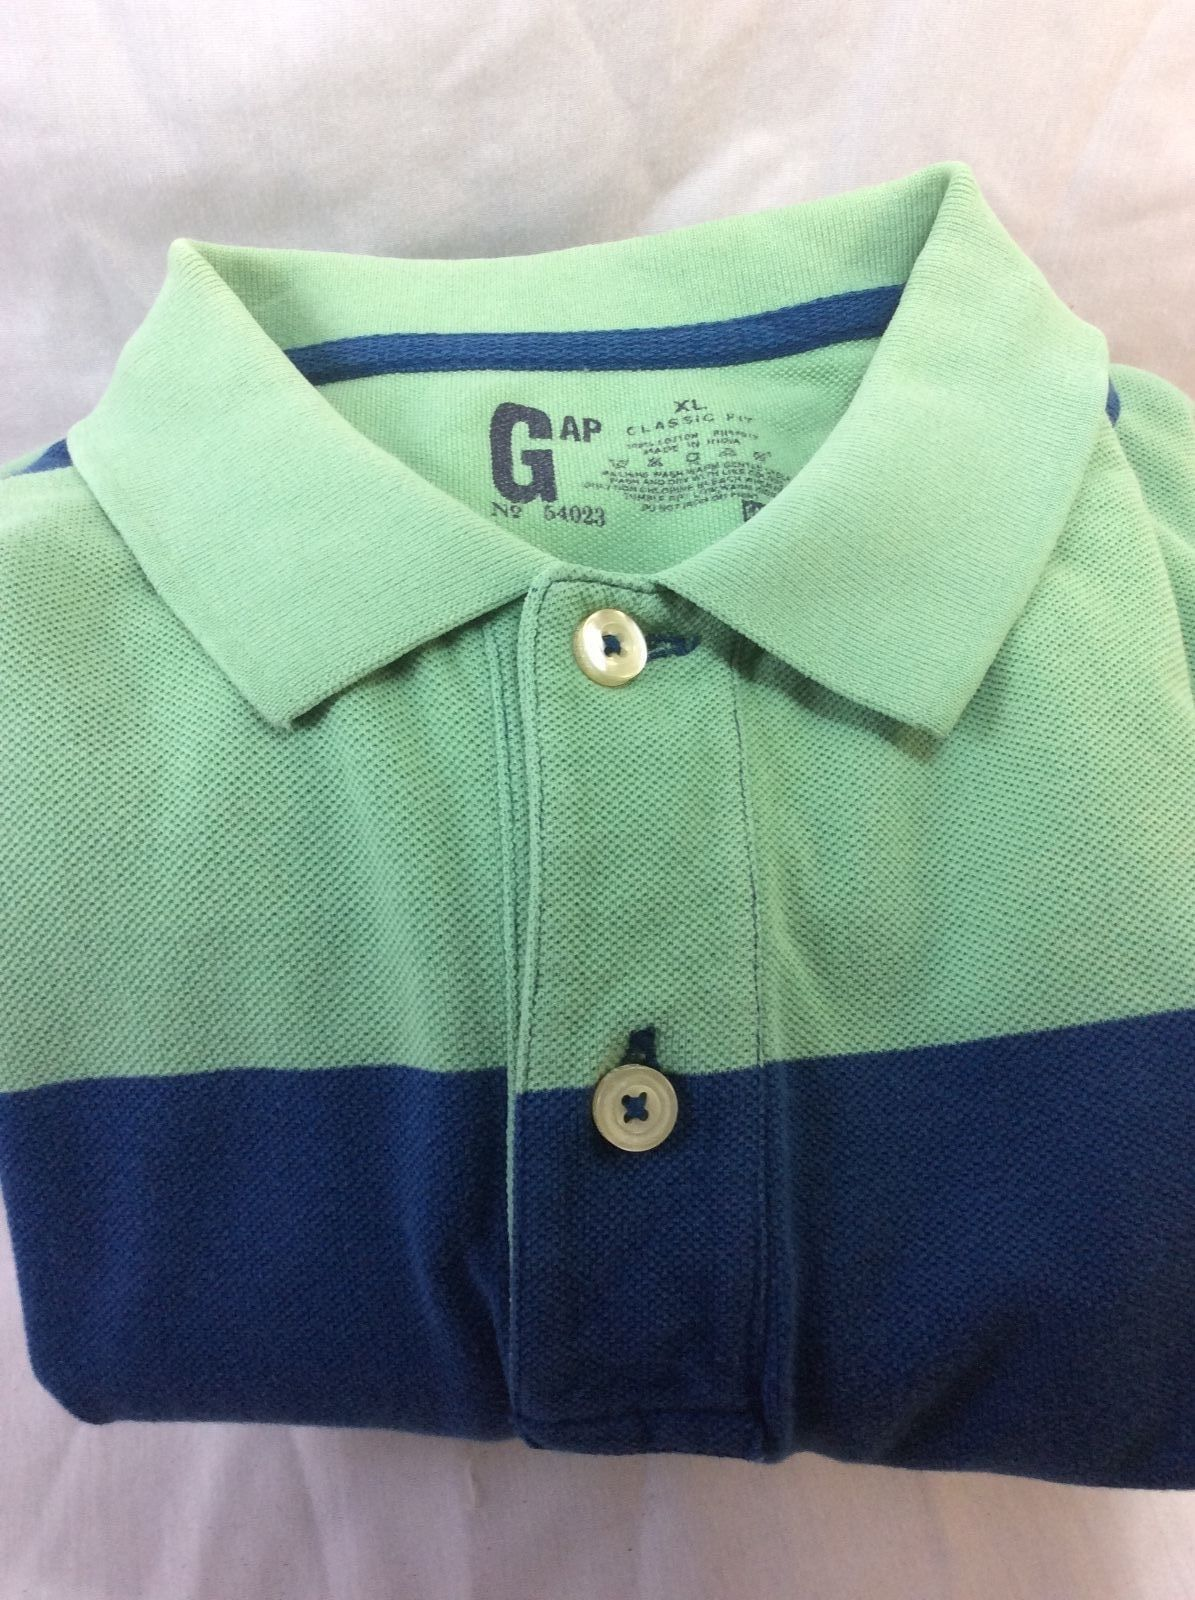 Men Polo Shirt GAP XL Classic Fit, 100% Cotton, Striped Blue and Green.